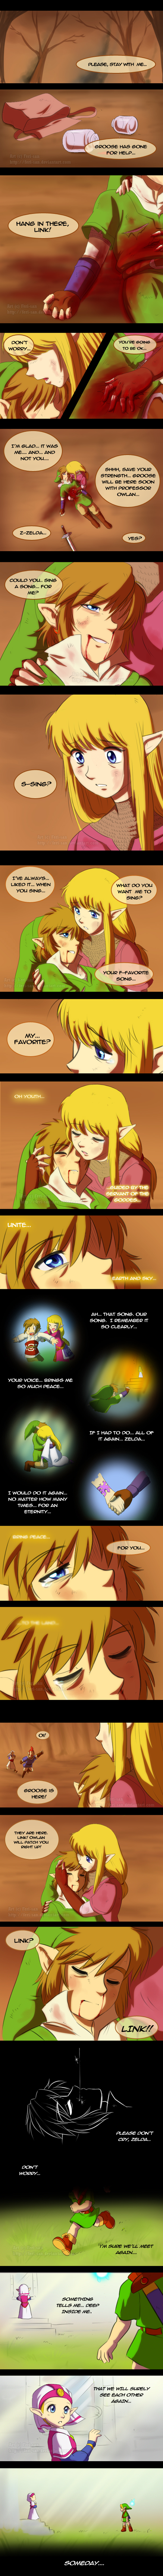 A Tale as Old as Time. An comic I had saved. Definitely not mine.. now i'm sad.